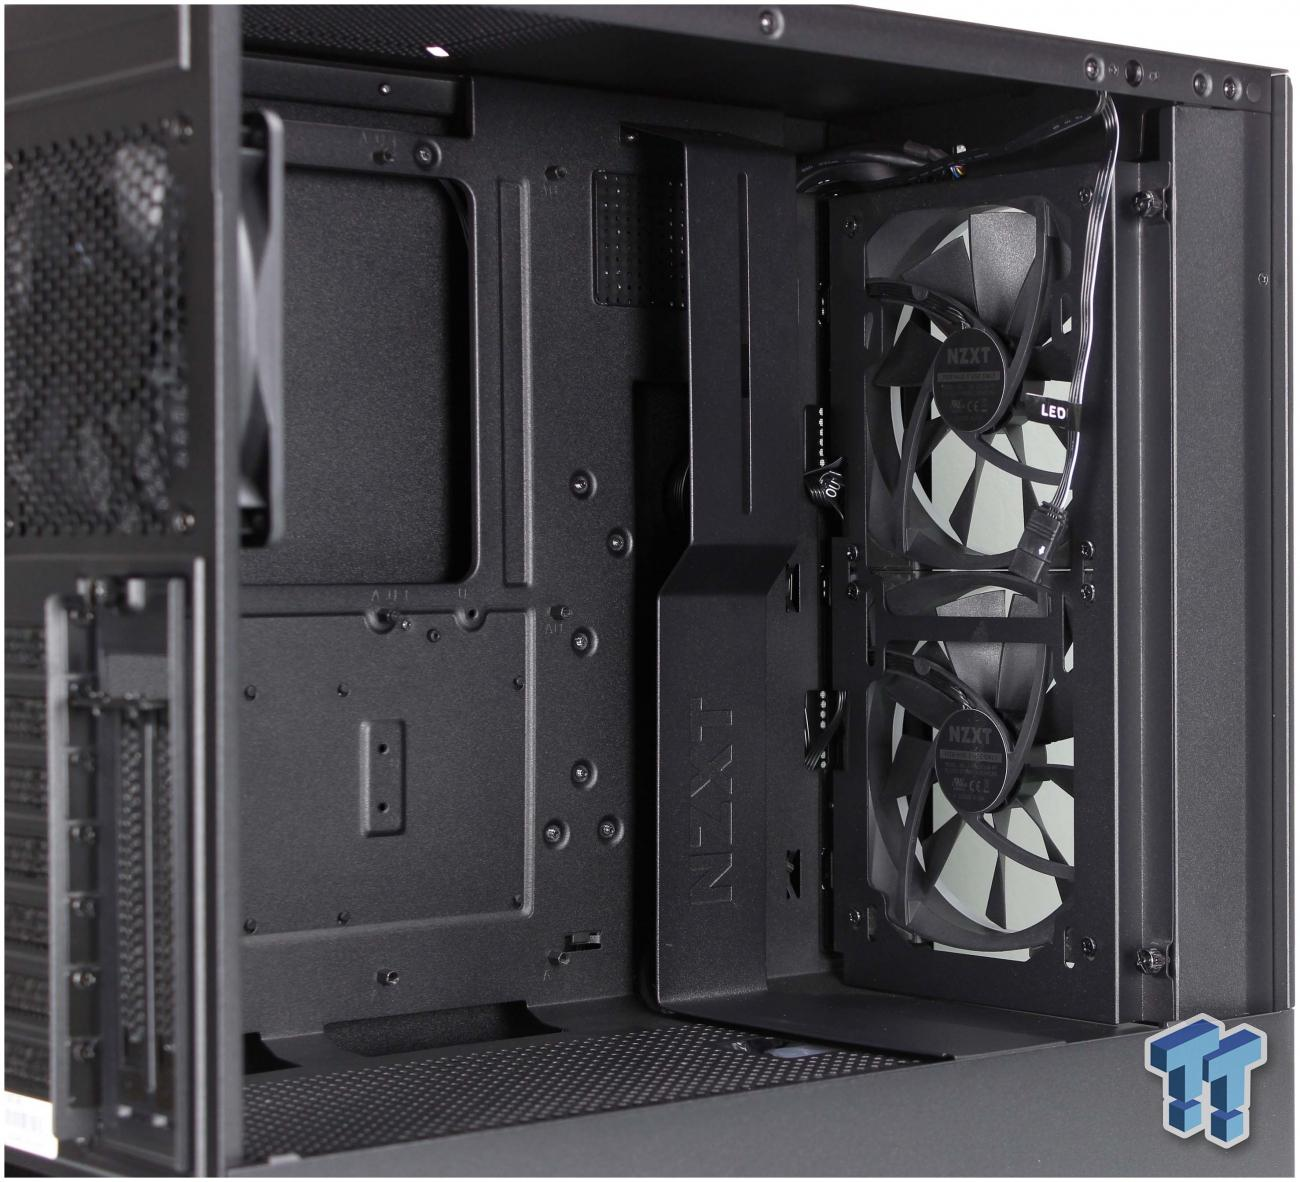 Nzxt H510 Elite Mid Tower Chassis Review Tweaktown